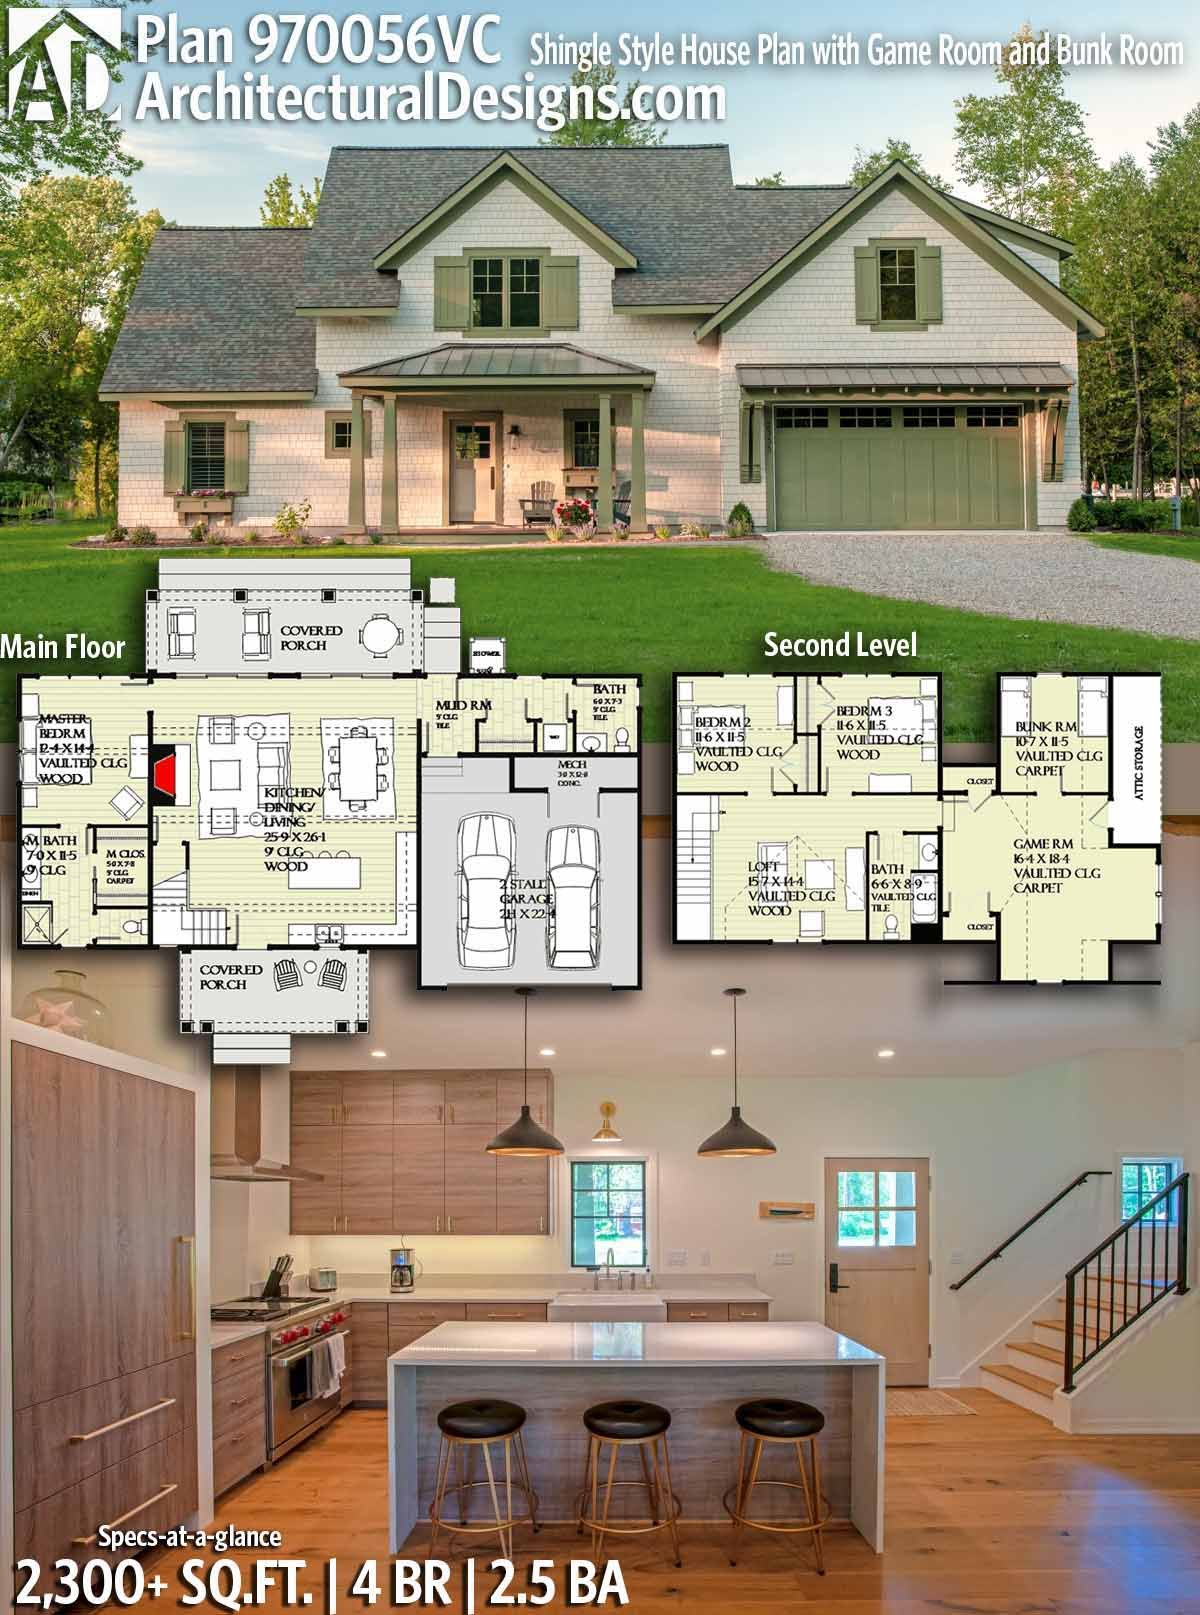 Plan 970056vc Shingle Style House Plan With Game Room And Bunk Room House Plans Exclusive House Plan Architectural Design House Plans